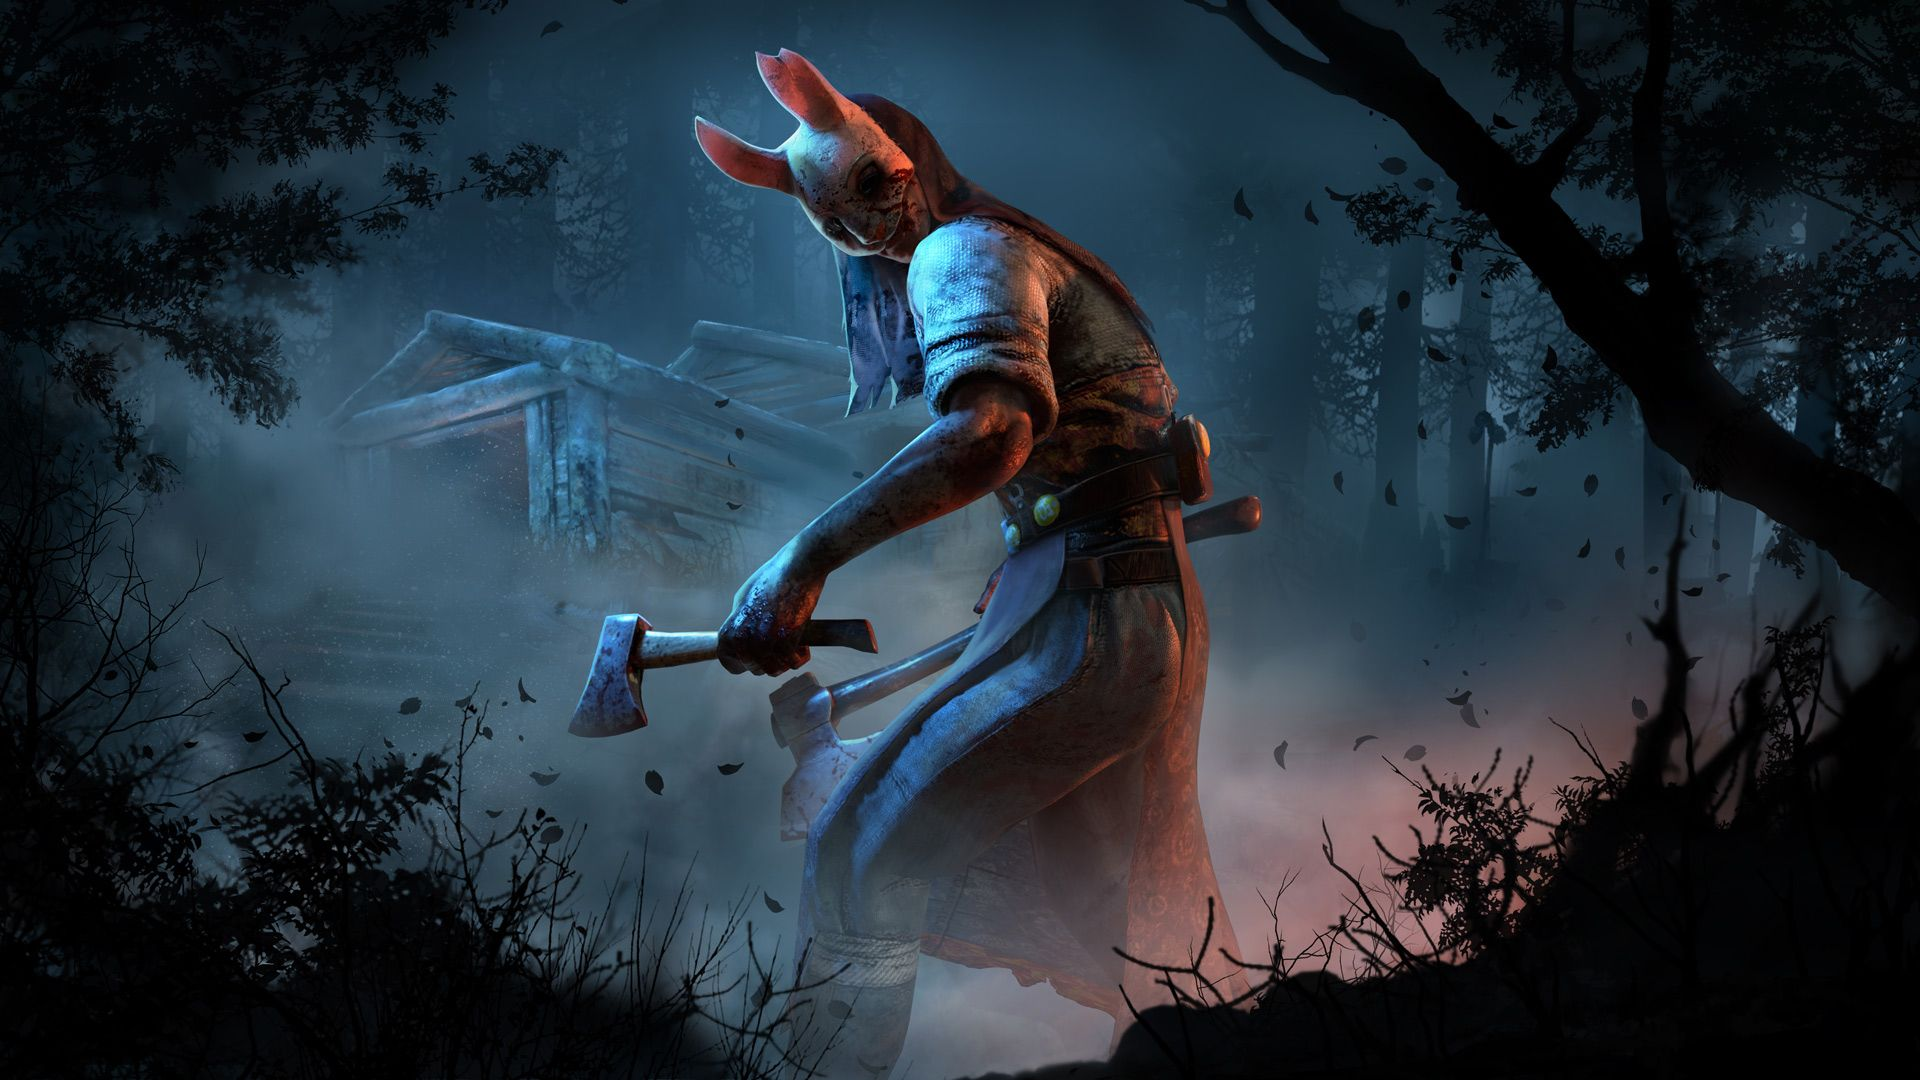 Dead By Daylight Wallpaper: Image Result For Dead By Daylight Wallpaper The Huntress